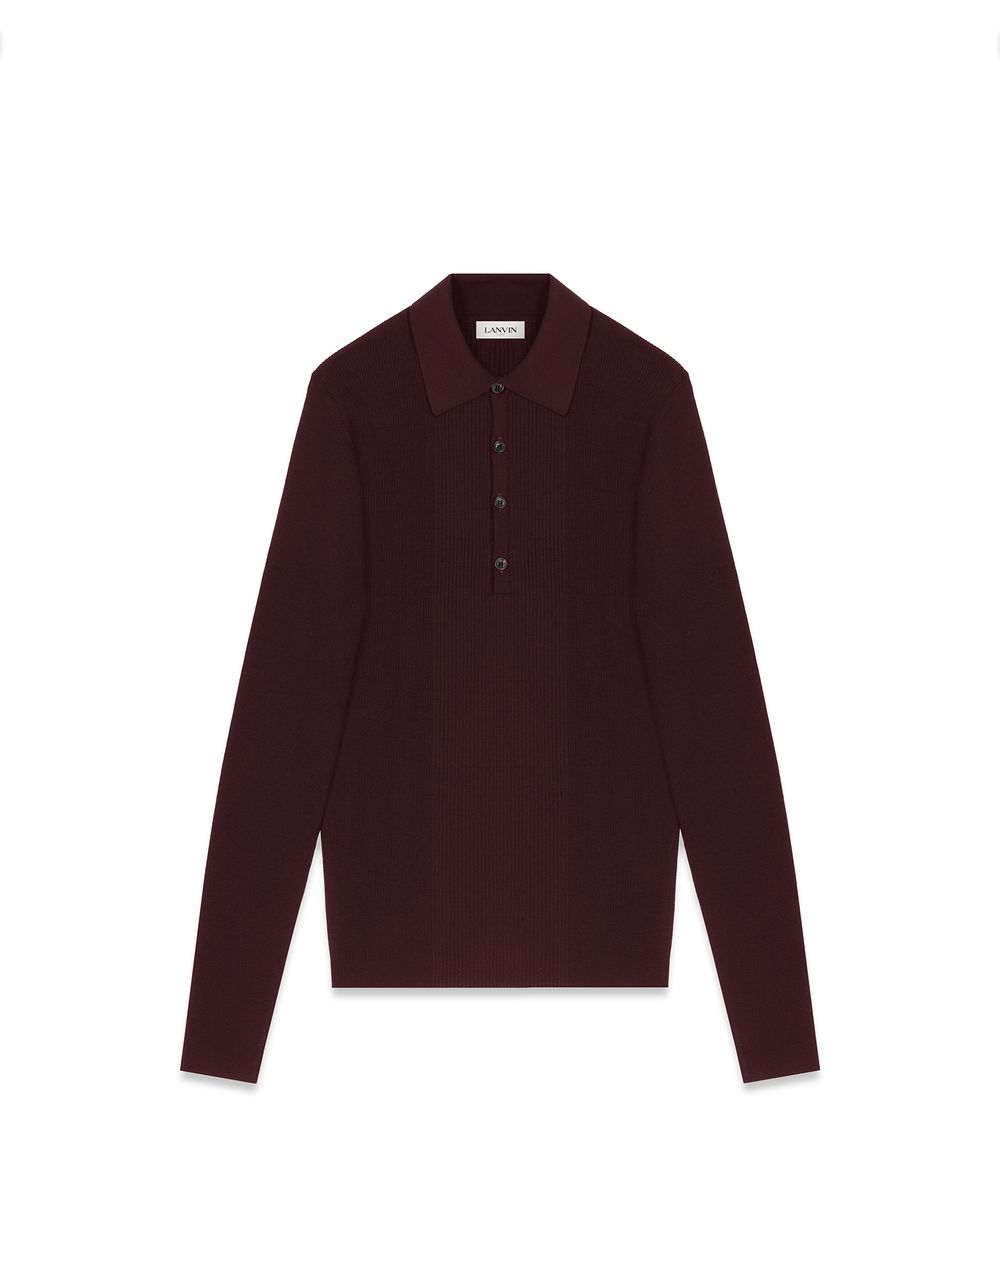 POLO IN MERINO WOOL - Lanvin